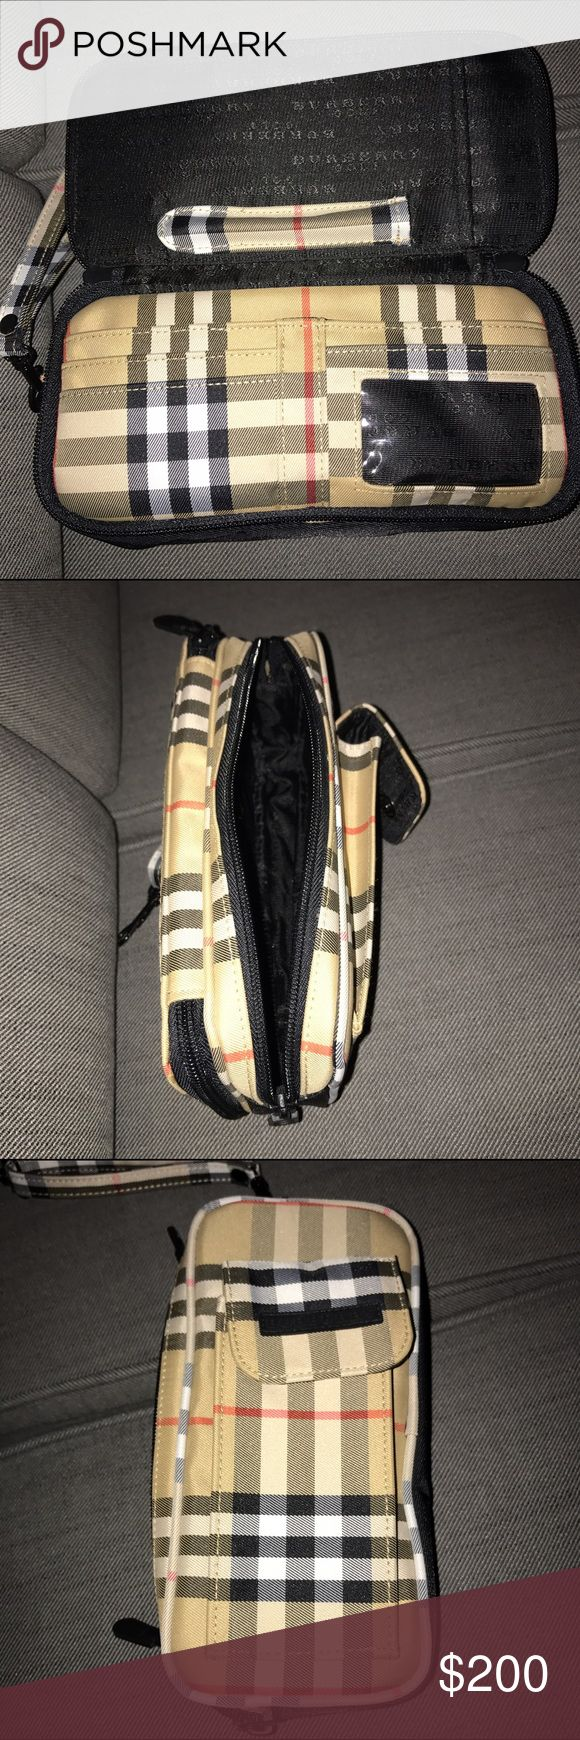 """Burberry Golf pouch/wallet Can be for both men and women.  Lots of compartments plus an exterior pouch that could be used for a cell phone. There is storage for golf tees.  The wristlet also features 2 fully zippered compartments. One has plenty of room.  The zippered compartment has 3 smaller slip pockets to hold your credit cards. On the under side of the outside cover is another pocket and a pen holder.  Condition: New Manufacturer: Burberry Material: Coated Canvas Measurements: 8 1/2""""…"""